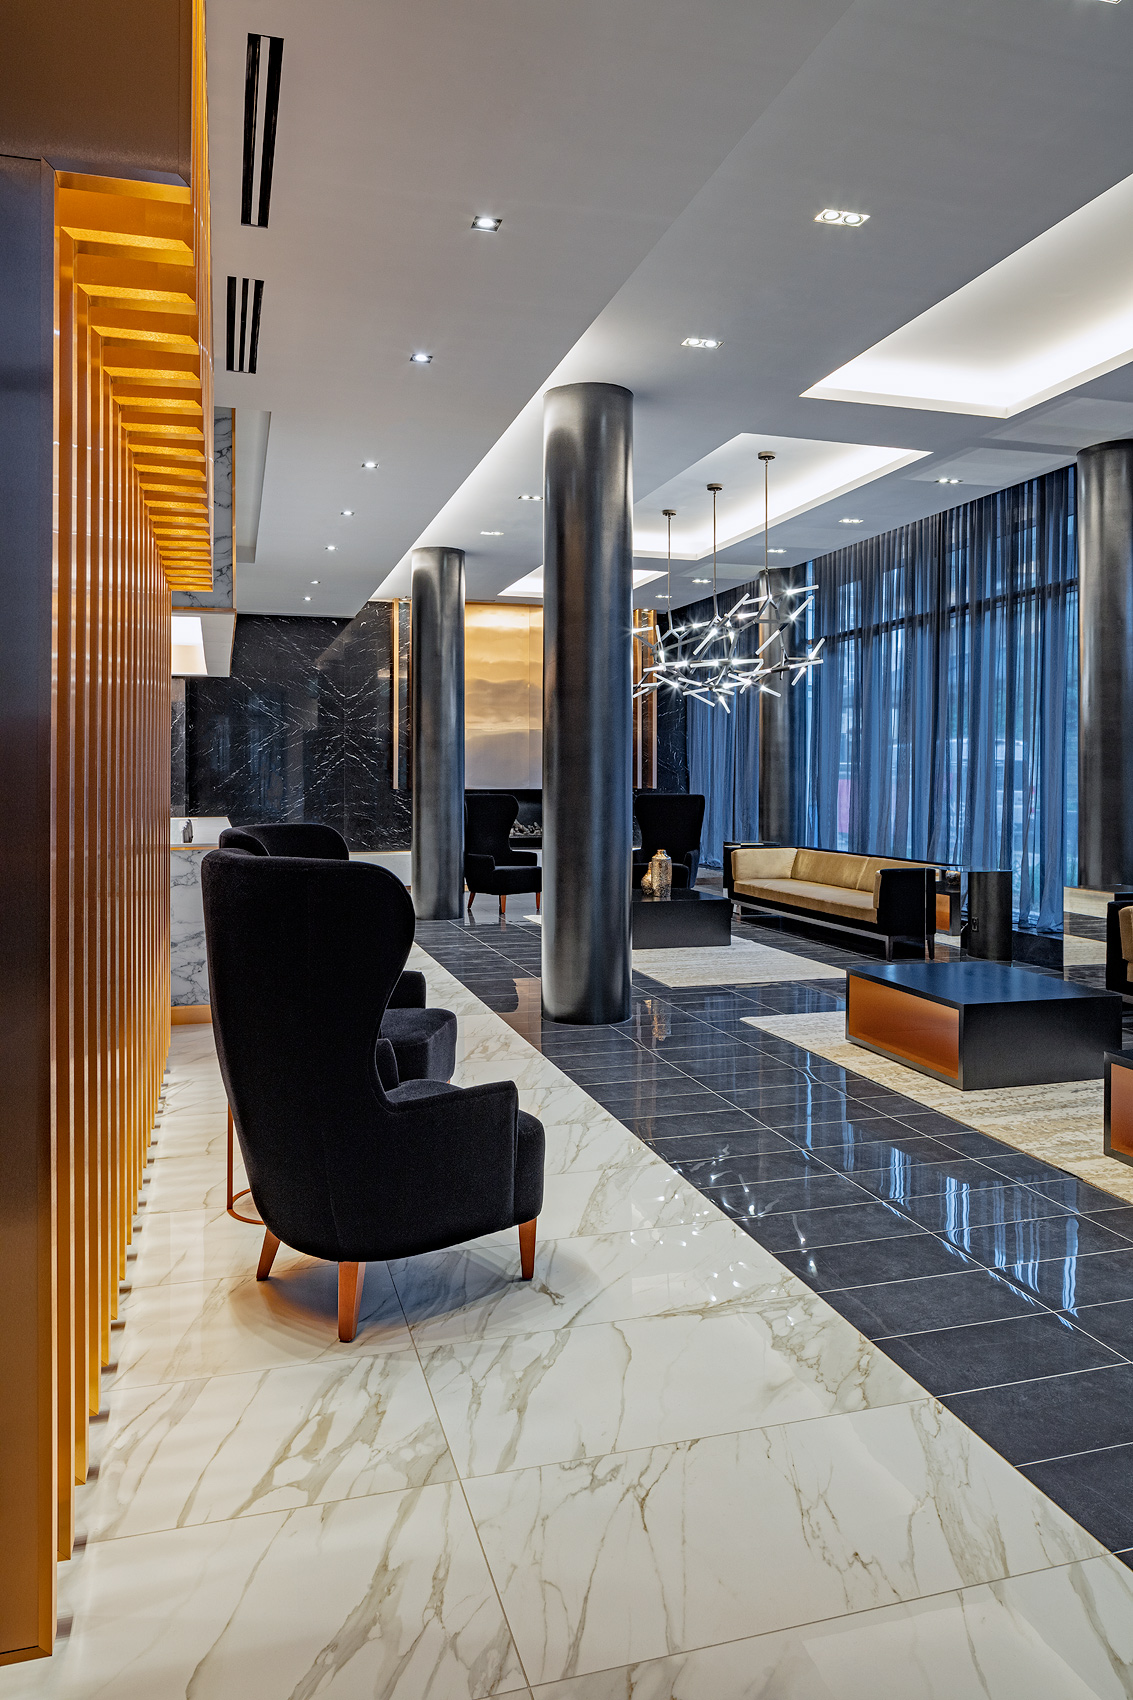 Lobby of a condominium, Peter A. Sellar Architectural Photographer